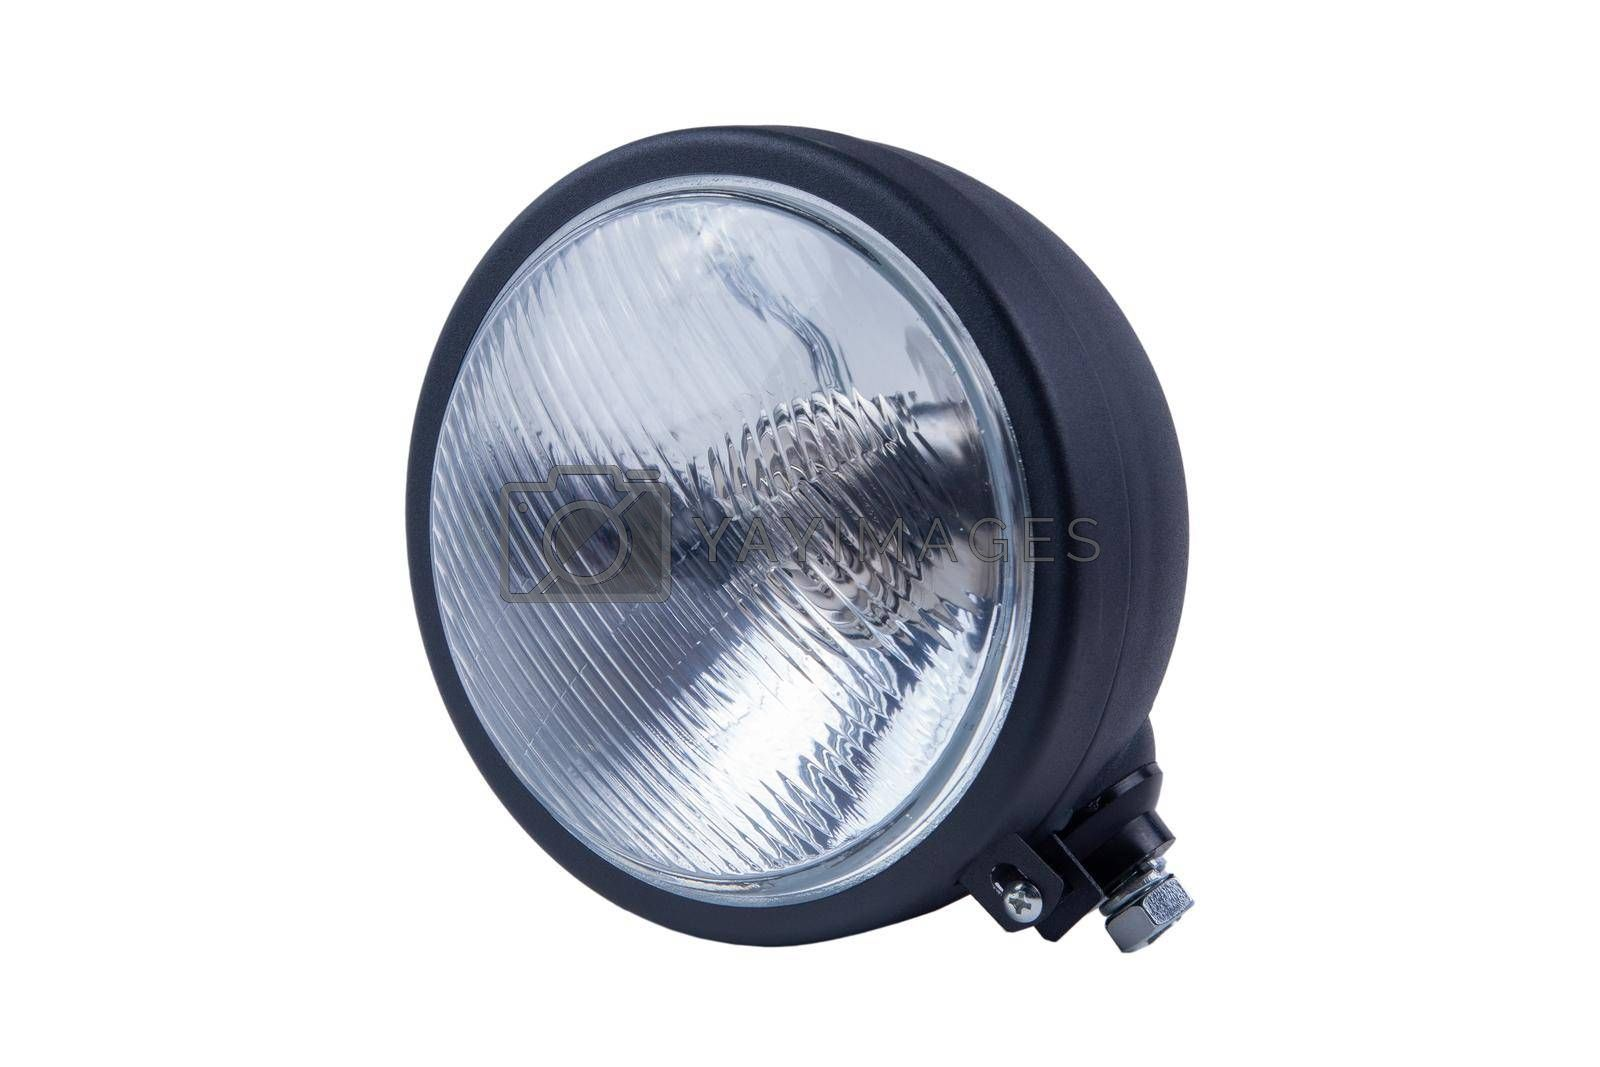 new High-beam headlight in a metal case on a white background